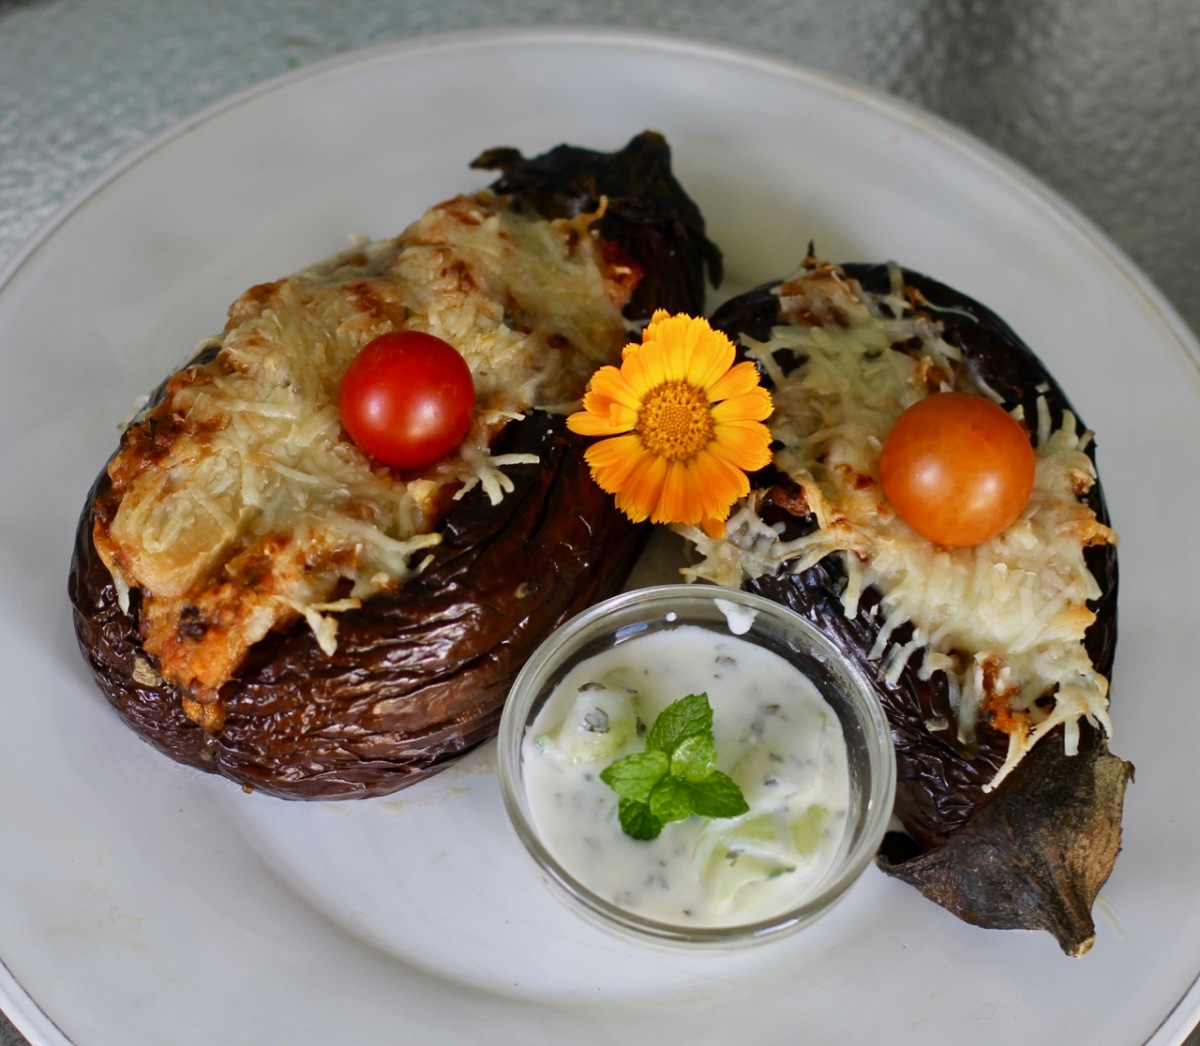 Turkish stuffed eggplants with lamb (Karni Yarik)